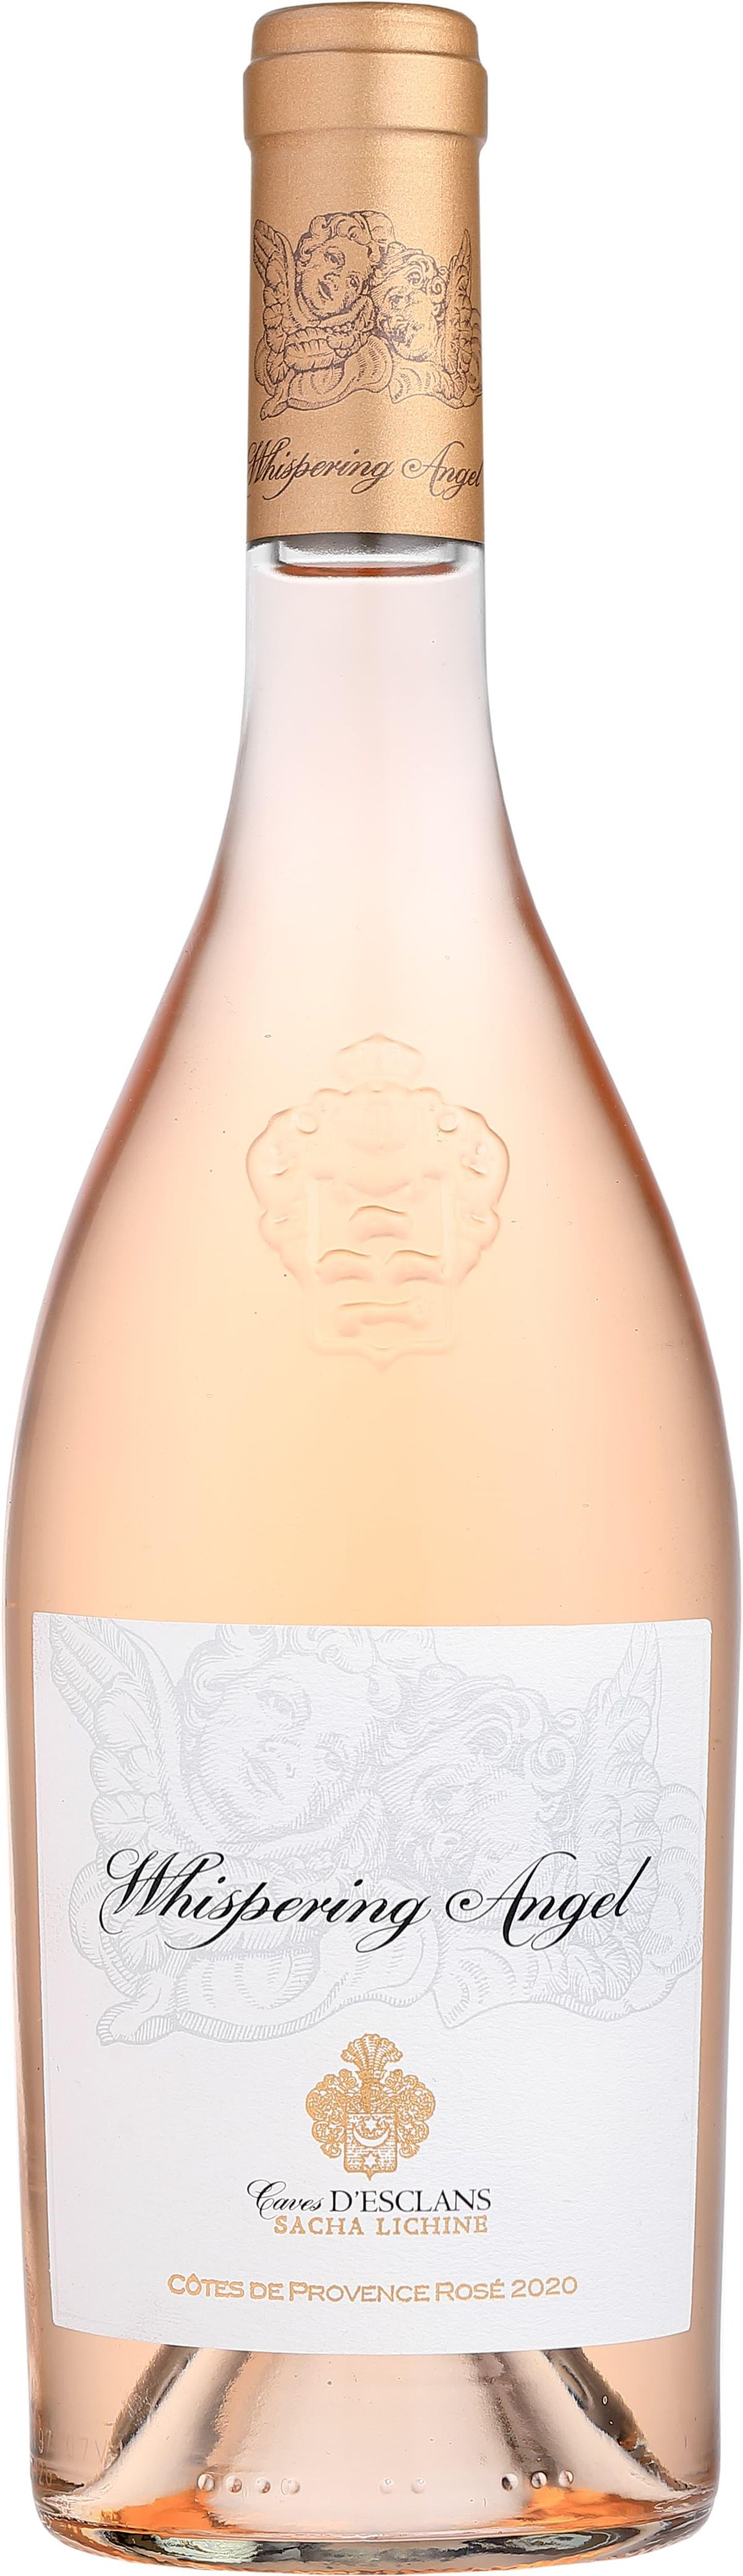 chateau d esclans whispering angel rose 2020